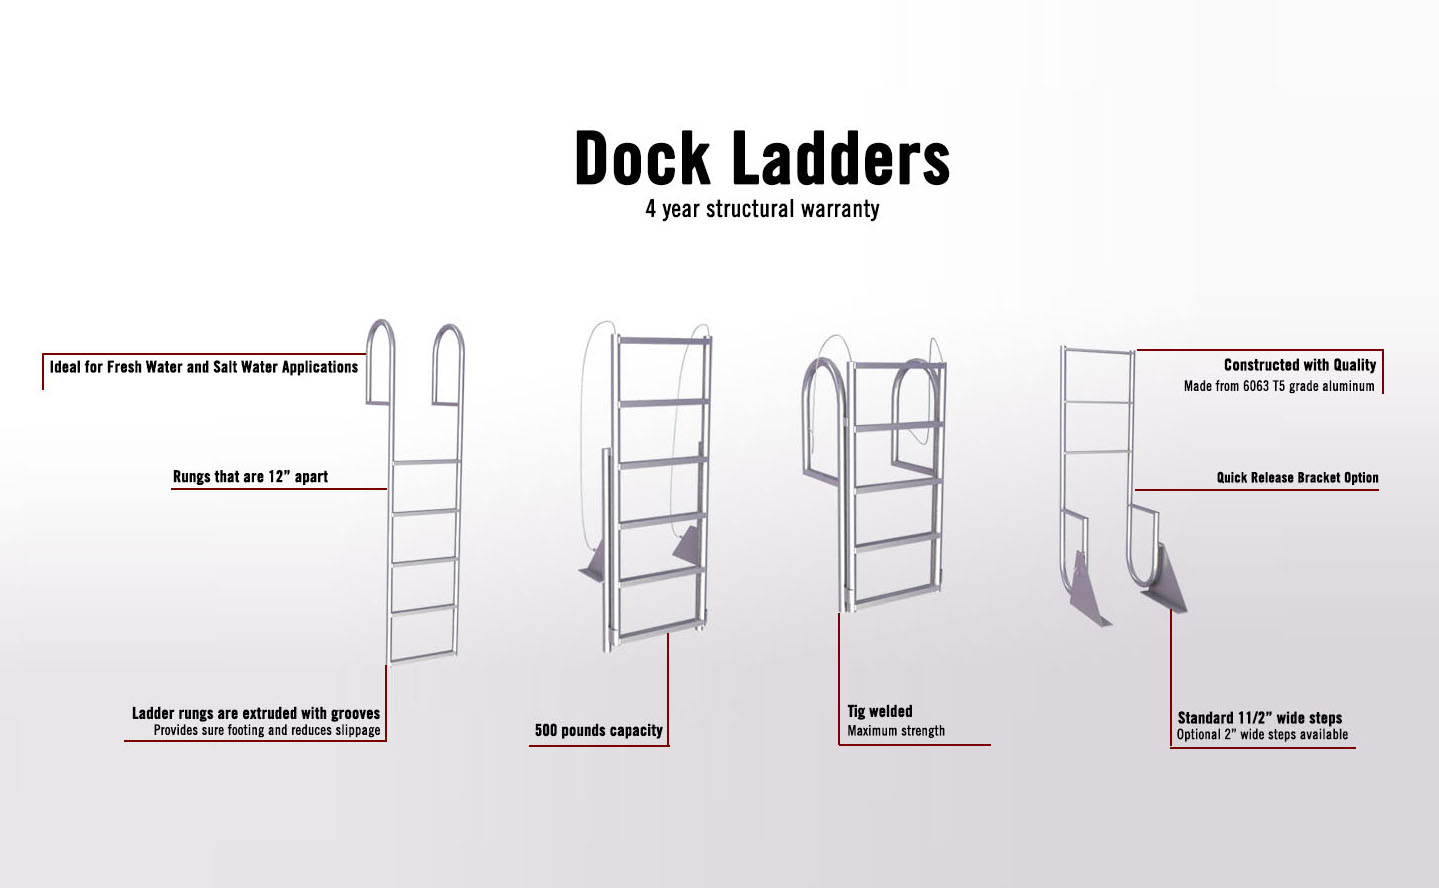 Aluminum Dock Ladder: Fixed & Retractable Aluminum Dock Ladders from Dock Boxes Unlimited